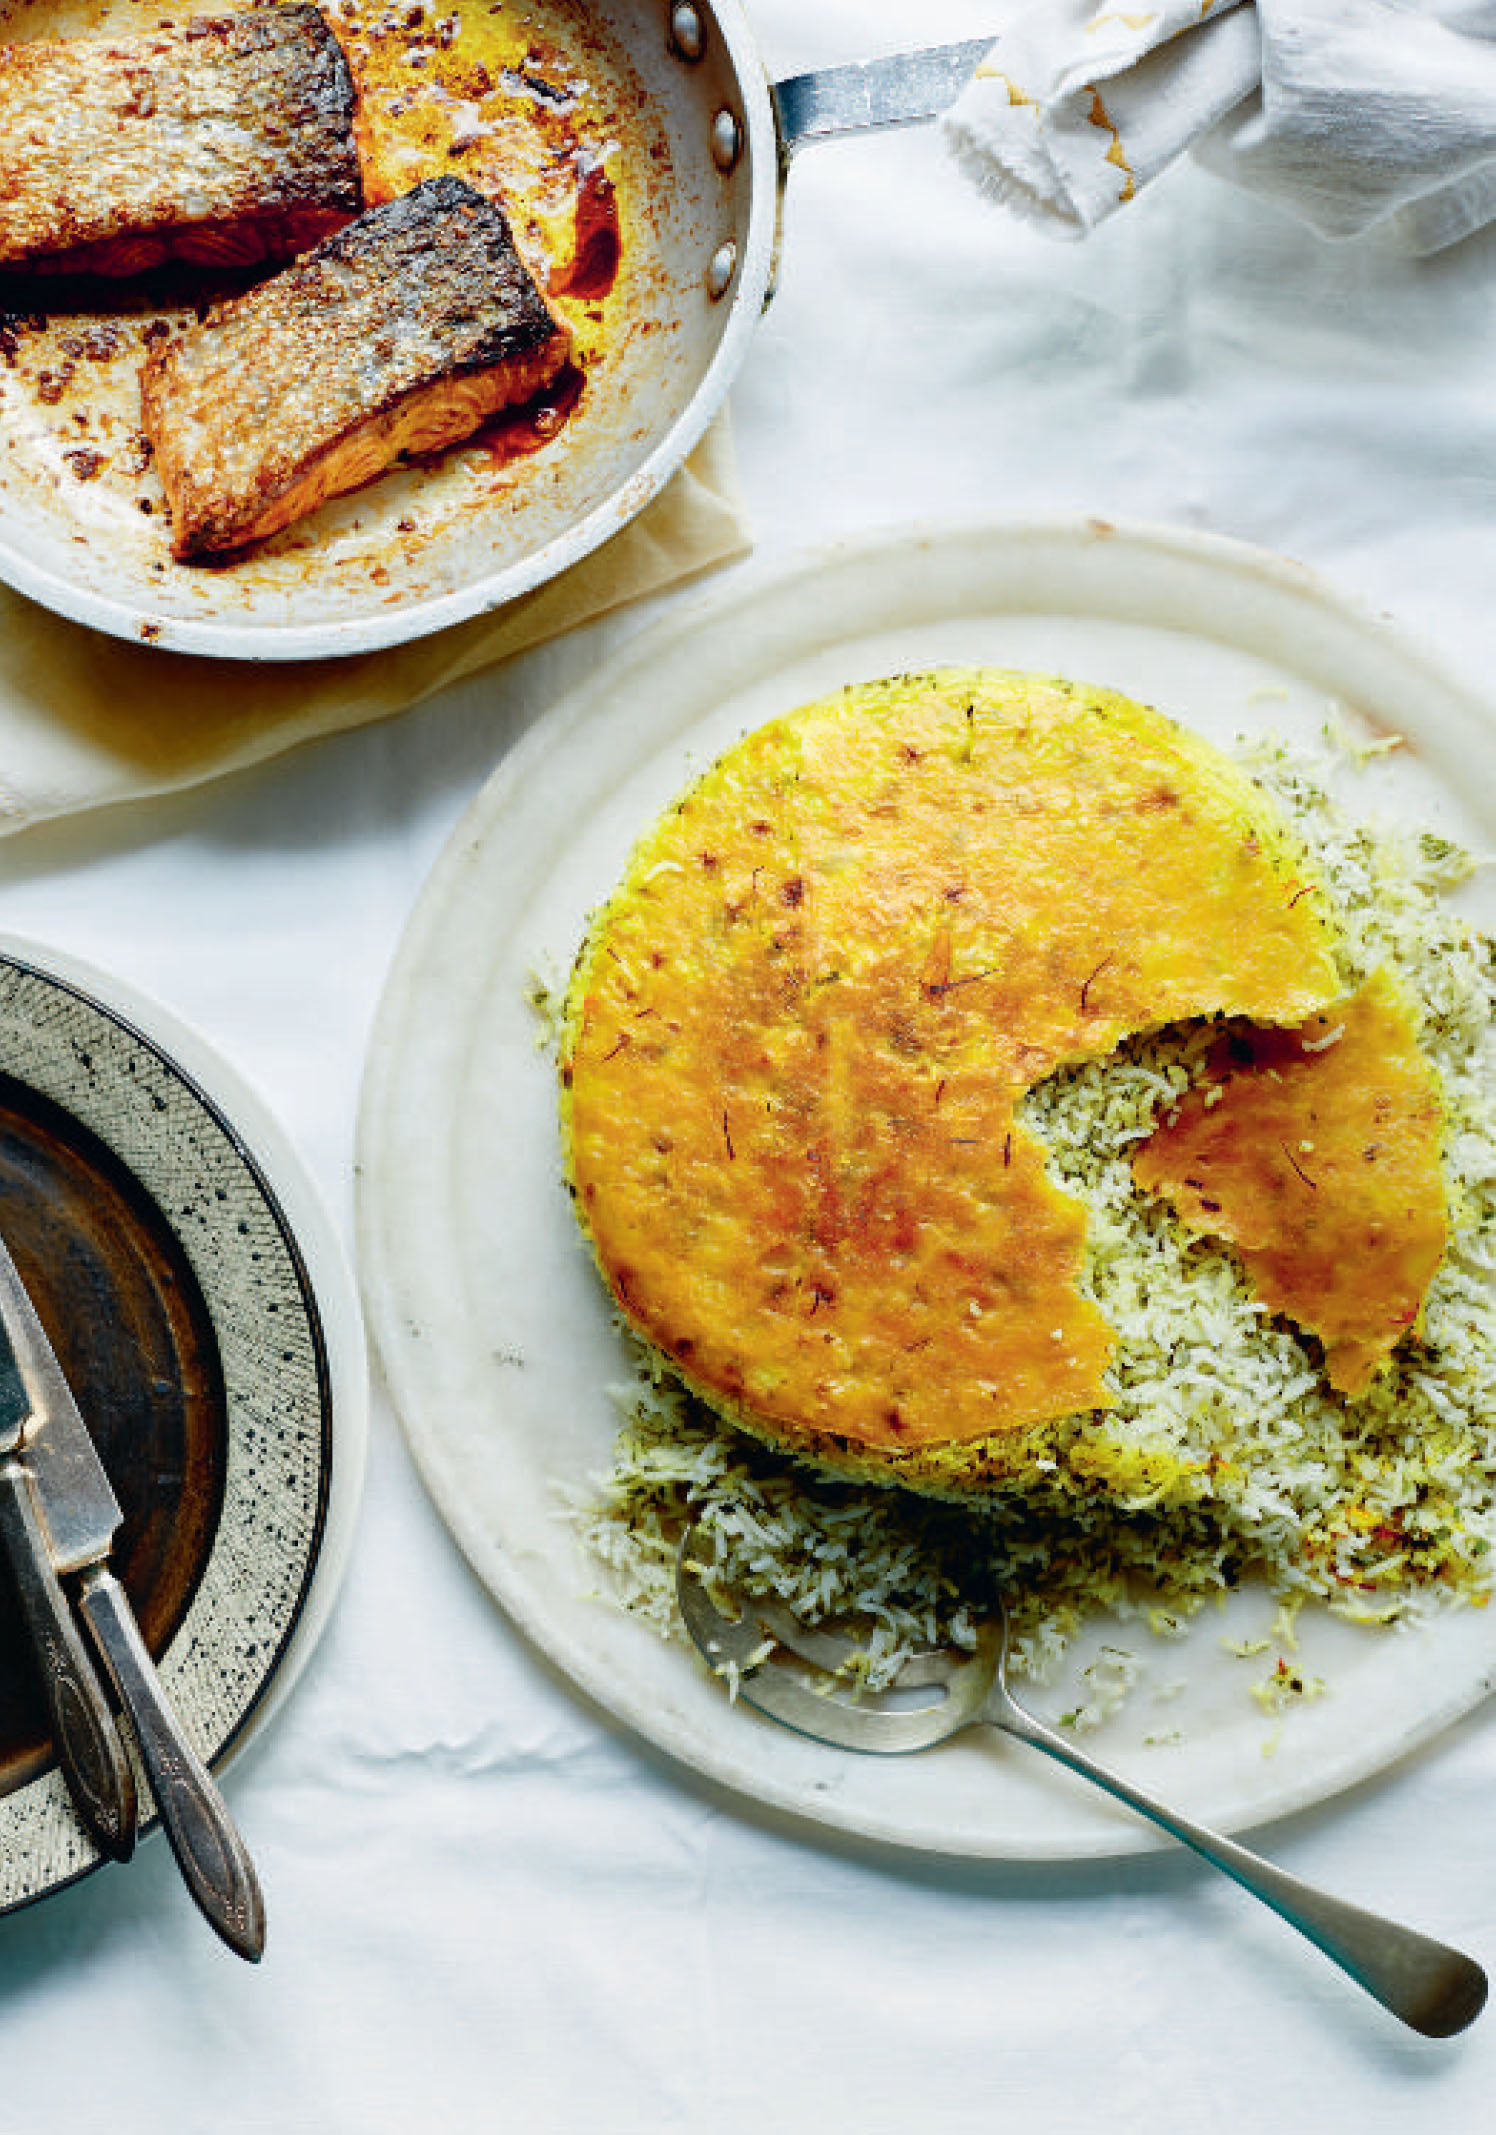 Mixed herb rice with baked salmon